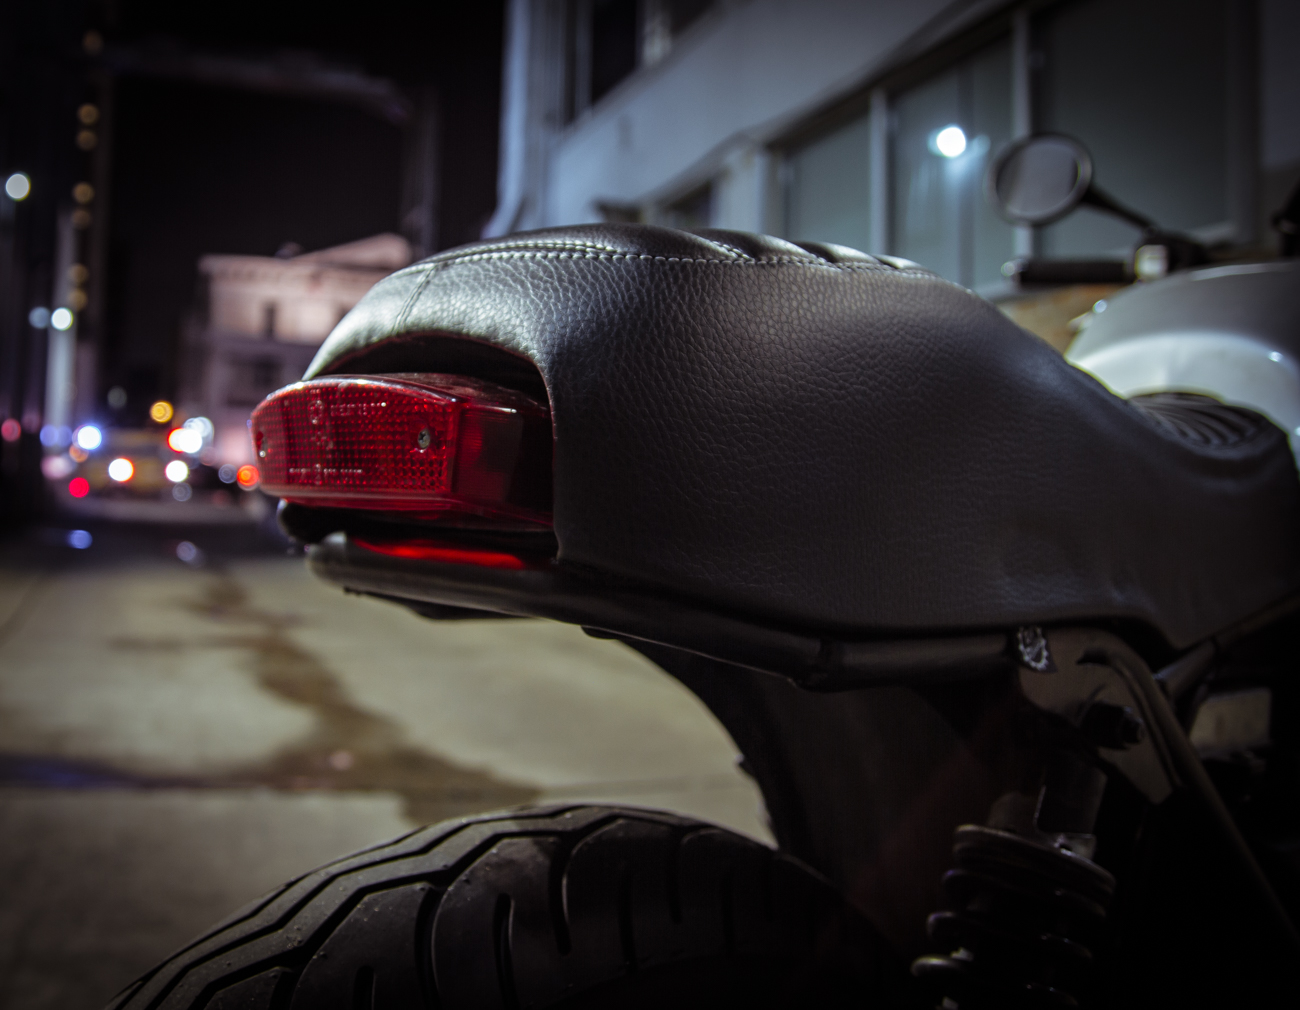 Accessory Installation - We can supply and install a number of accessories no matter if you're looking to cater your bike to your personal needs on the long trips or upgrade the style and aesthetic for the city streets.